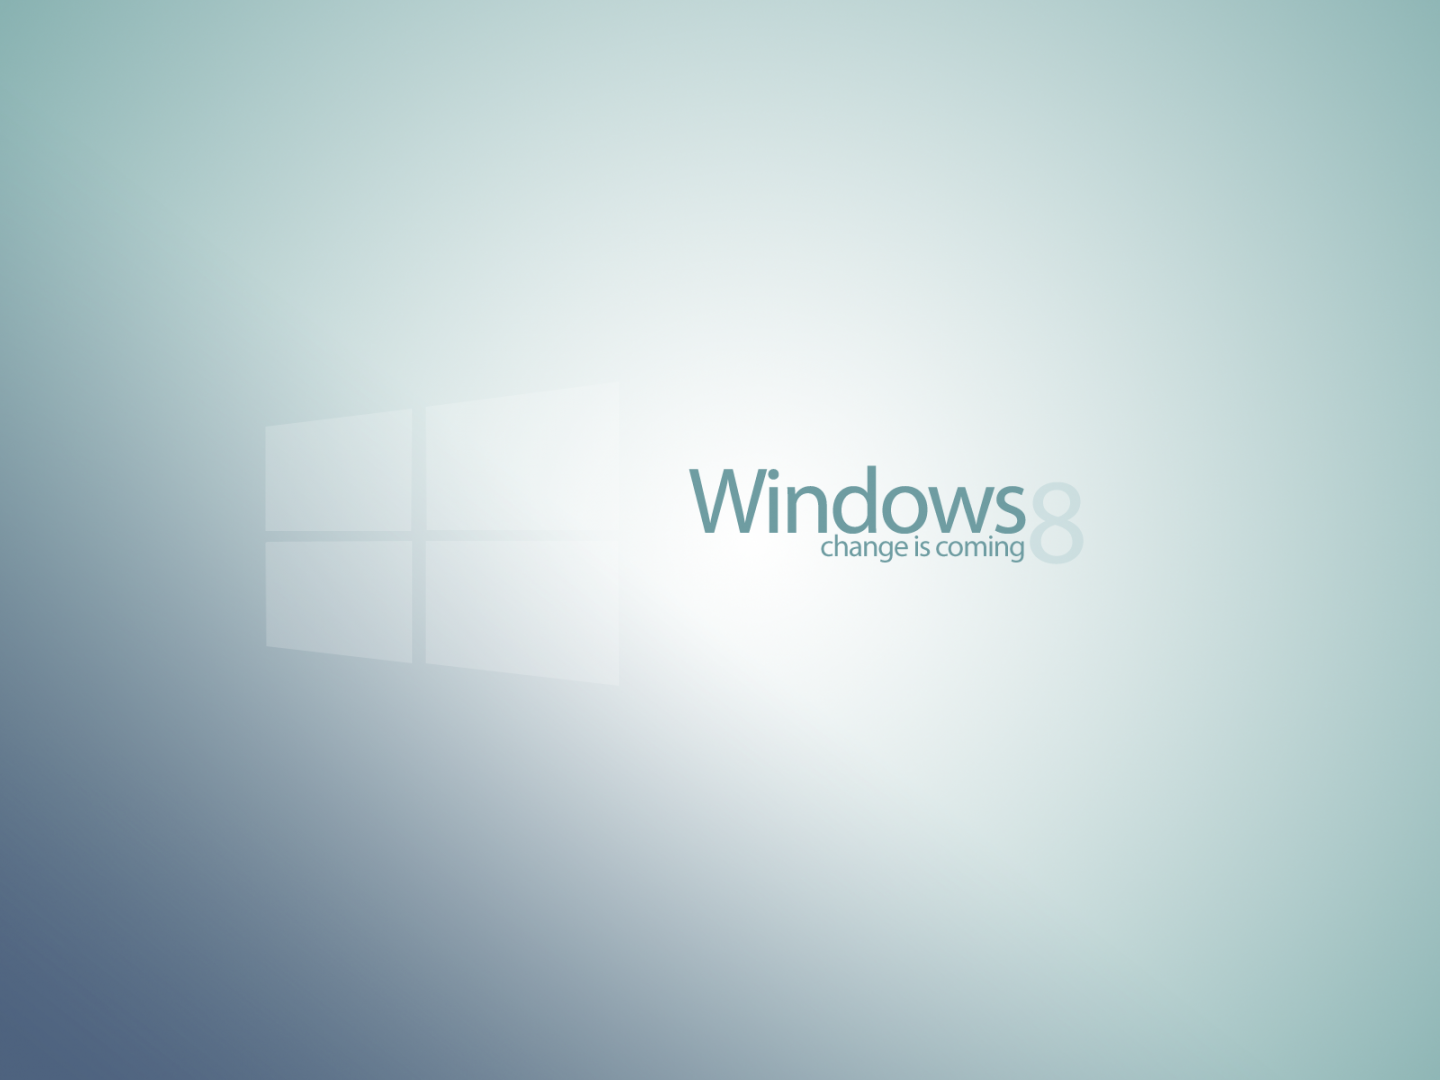 windows_8_concept_new_logo_wallpaper__3_by_danielskrzypon-d4tamll.png